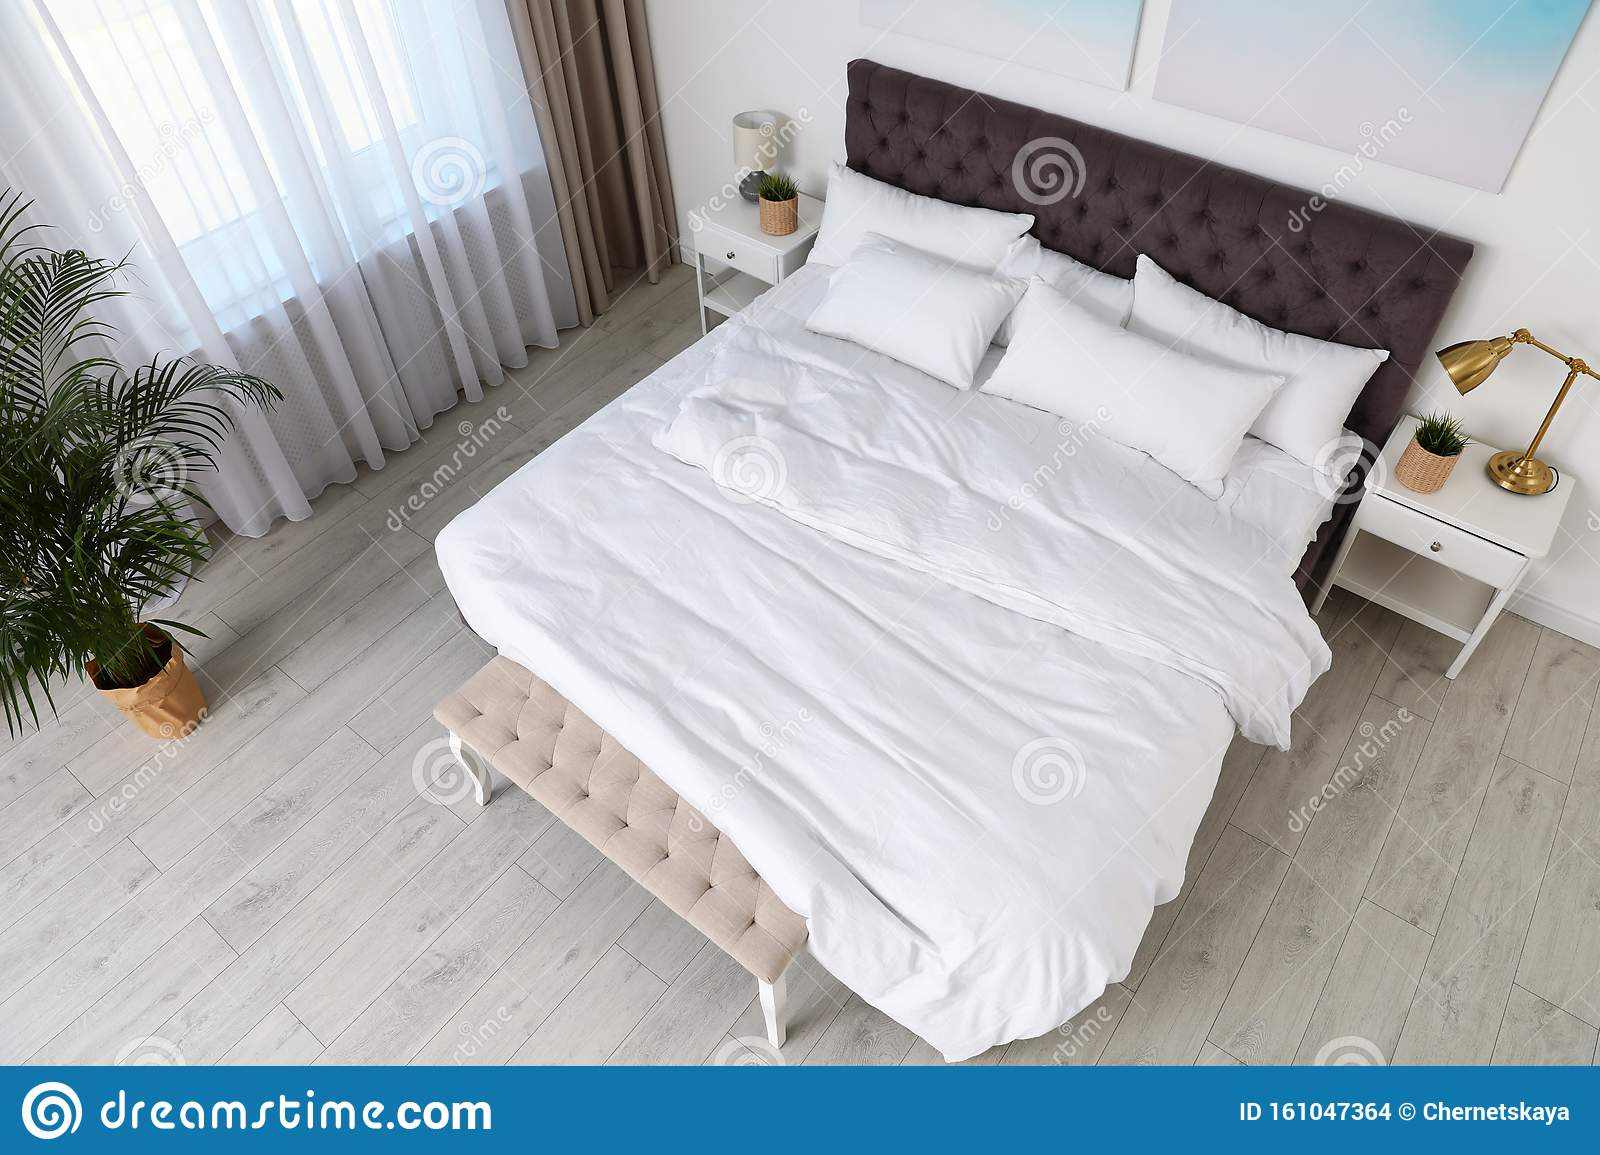 58 Cctv Camera Bedroom Photos Free Royalty Free Stock Photos From Dreamstime